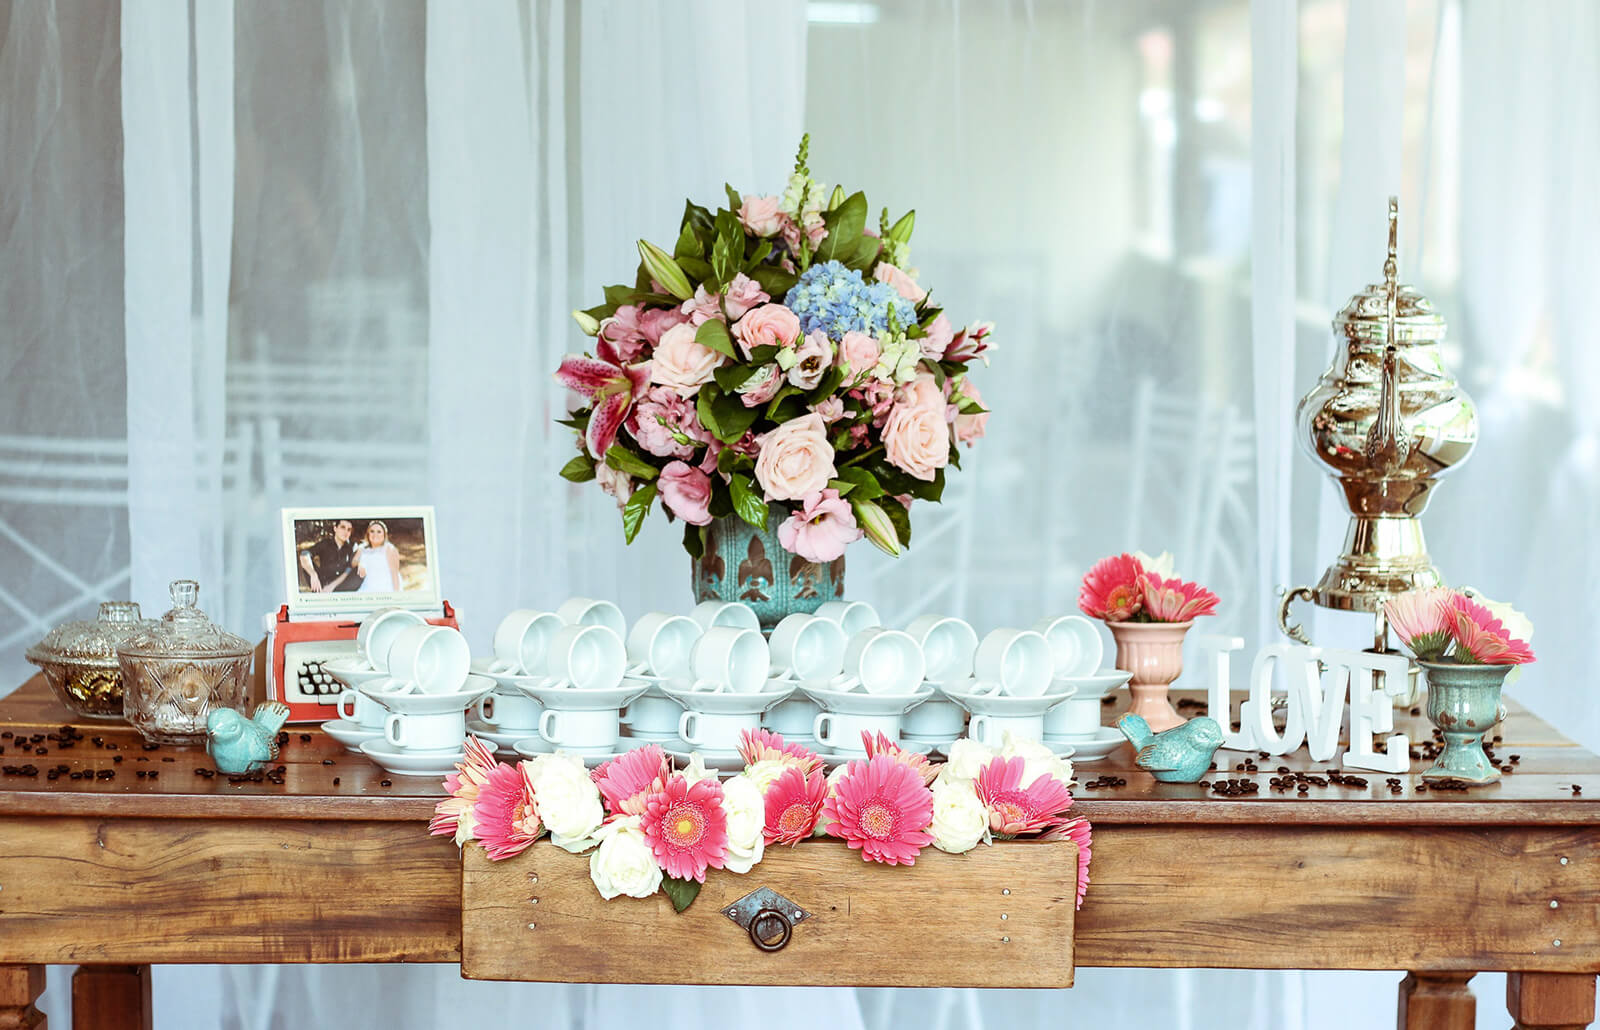 Coffee Bar Ideas for the Wedding Reception | LoveToKnow